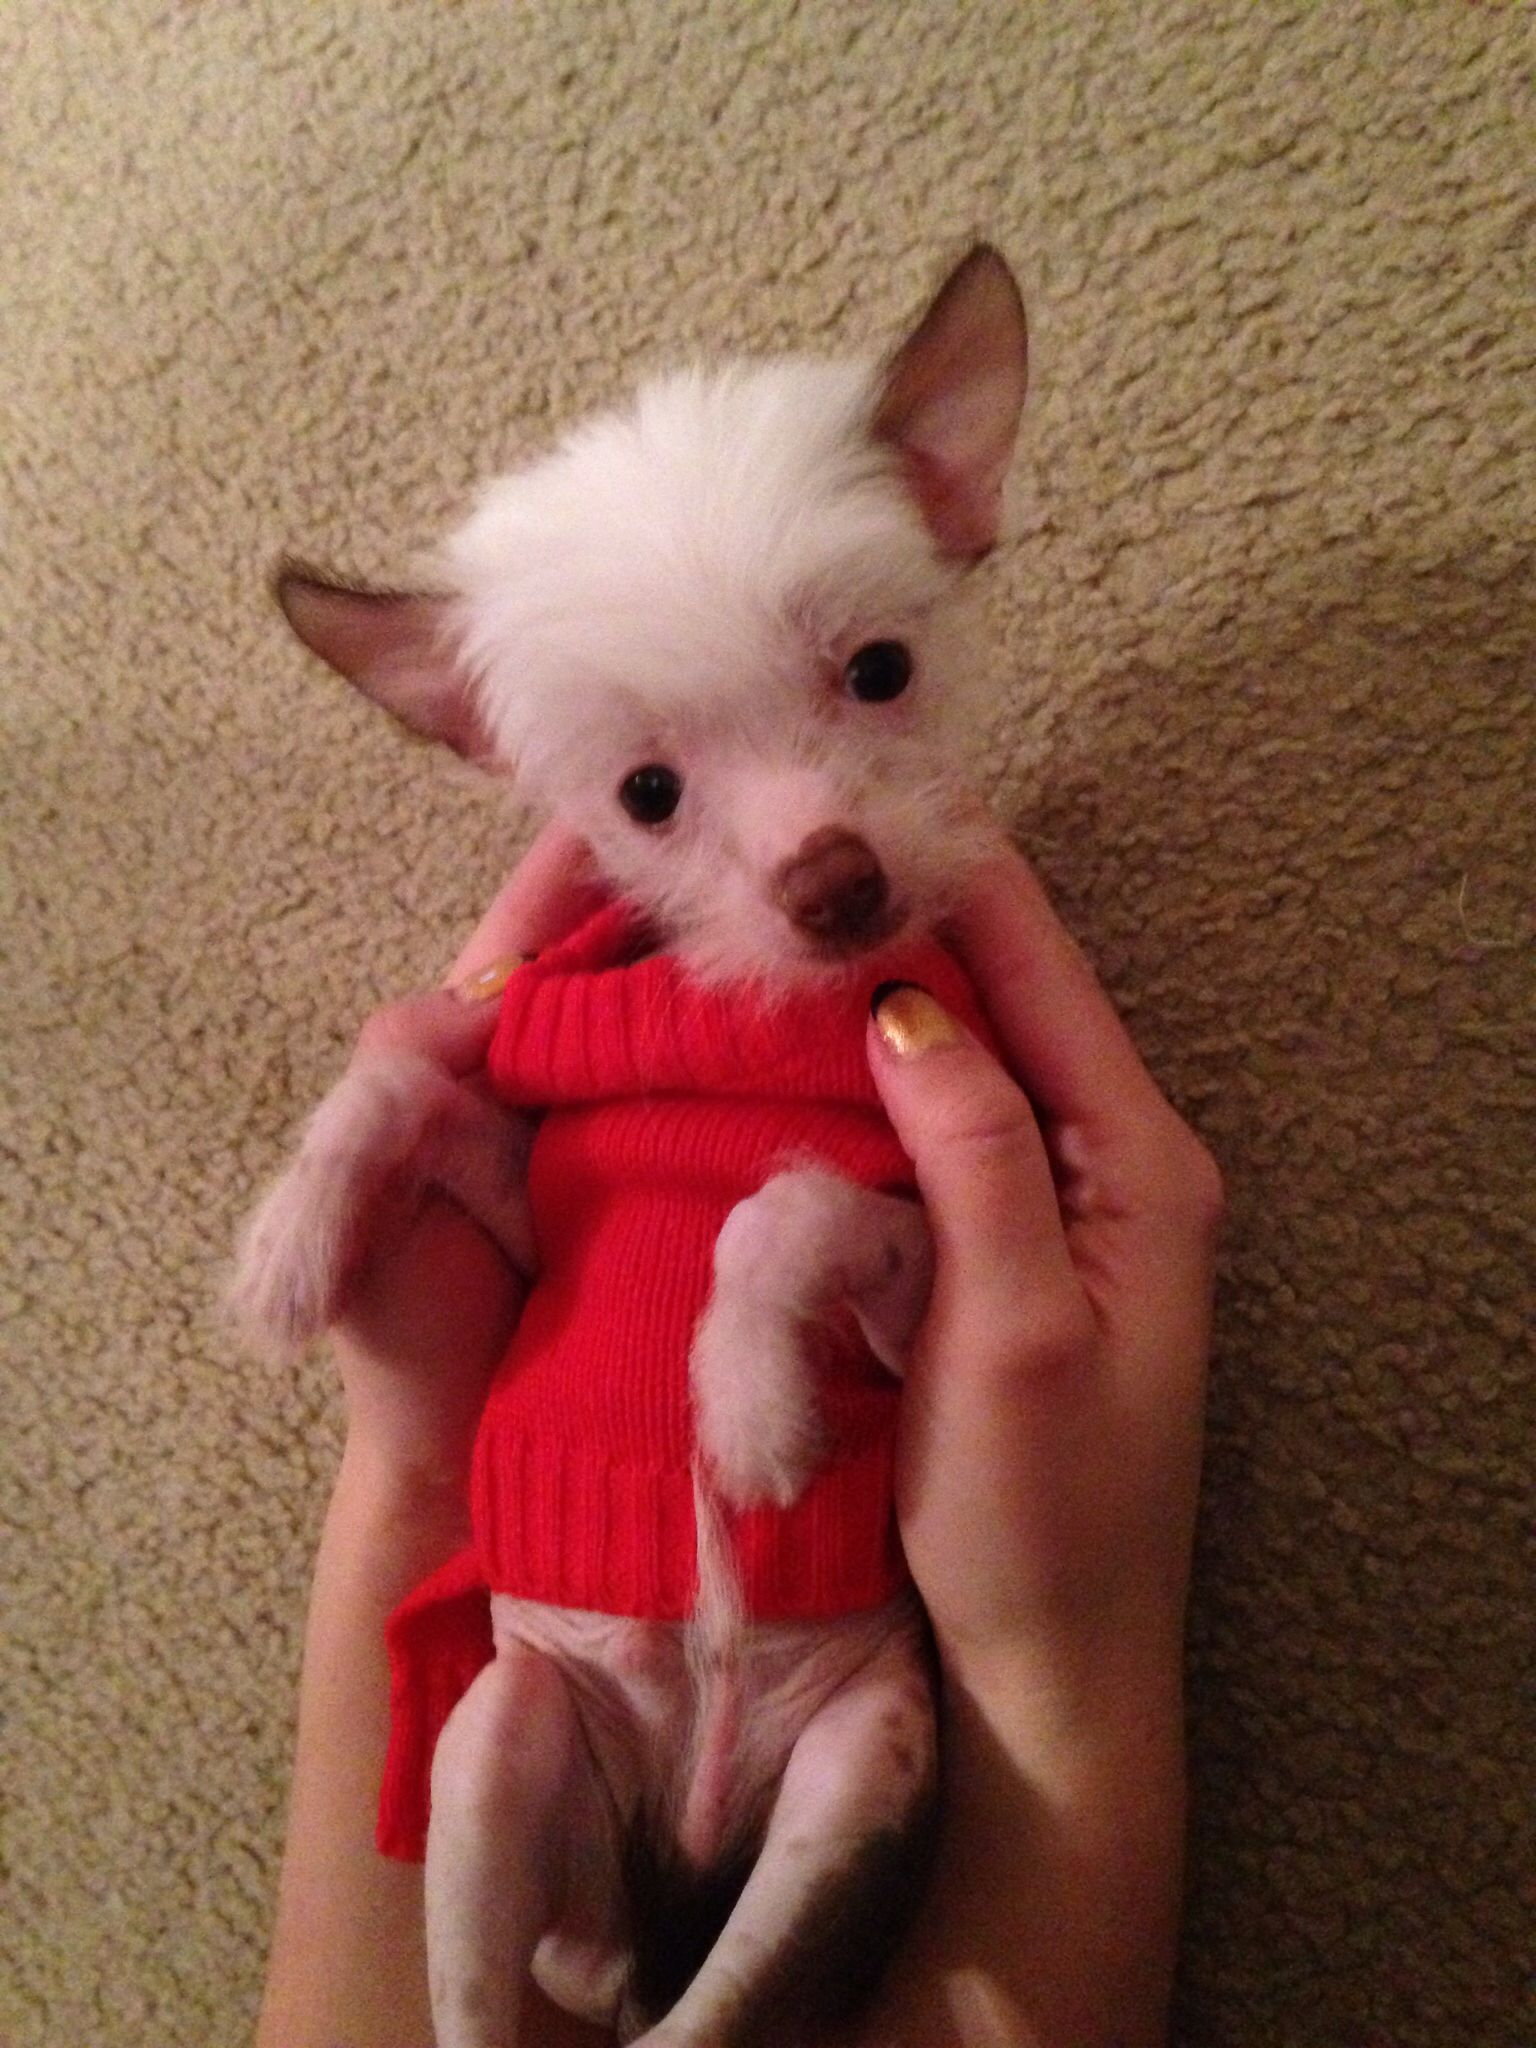 Pin By Crystal Mccarty On Sooo Cute Chinese Crested Dog Chinese Crested Puppy Chinese Crested